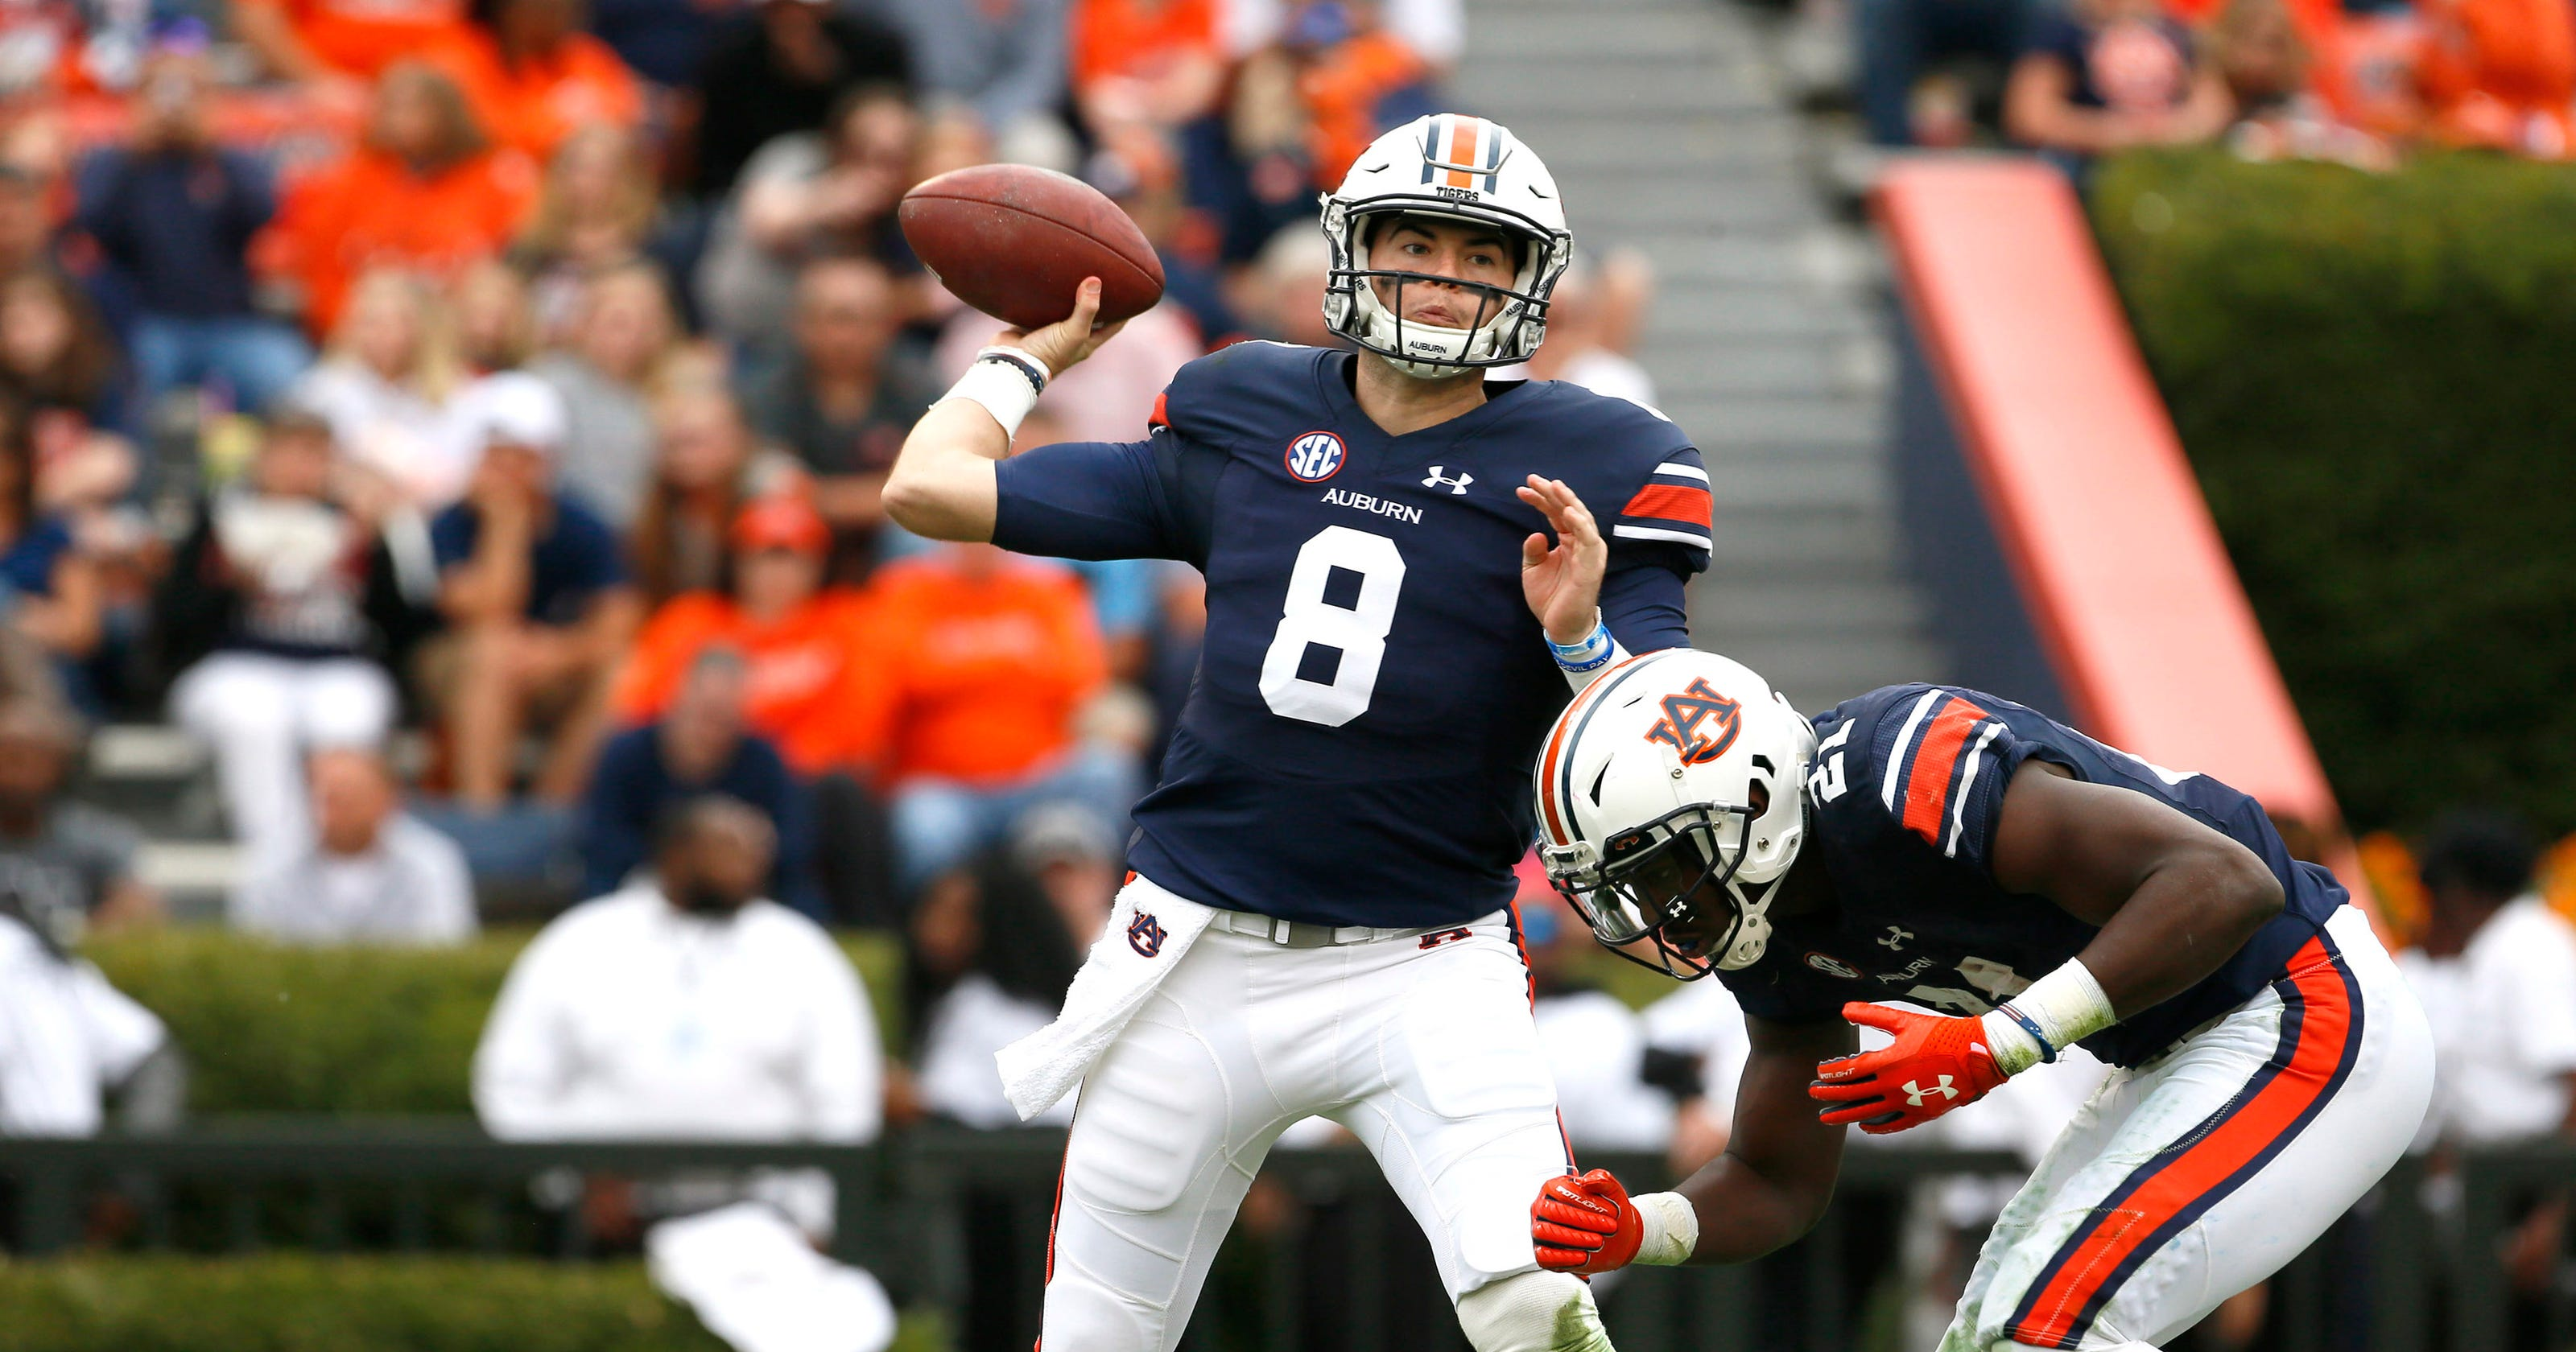 Peach Bowl preview  Auburn vs. UCF 8c7186da6